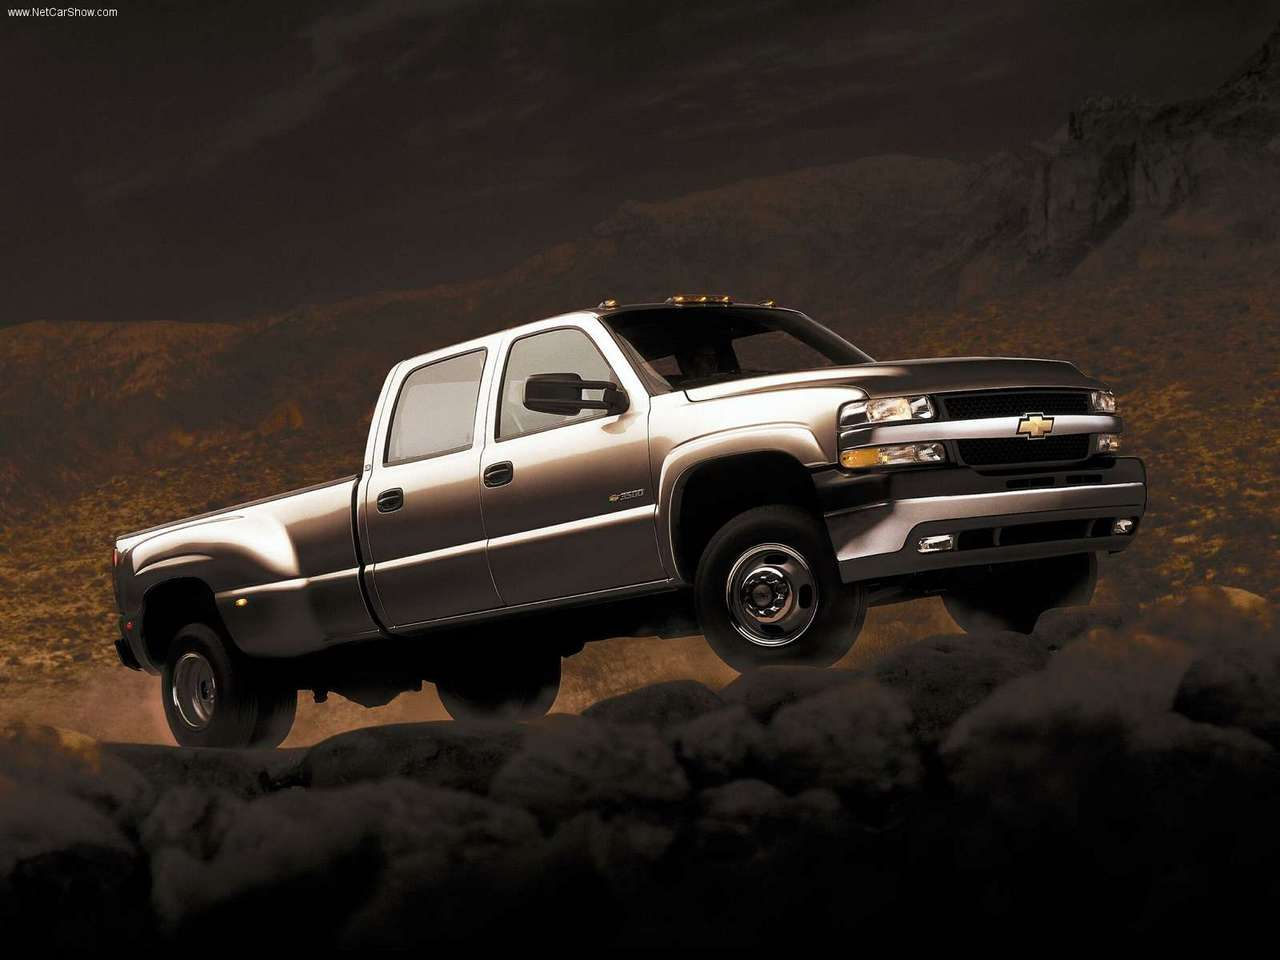 Chevrolet Silverado Wallpapers | HD Wallpapers Base